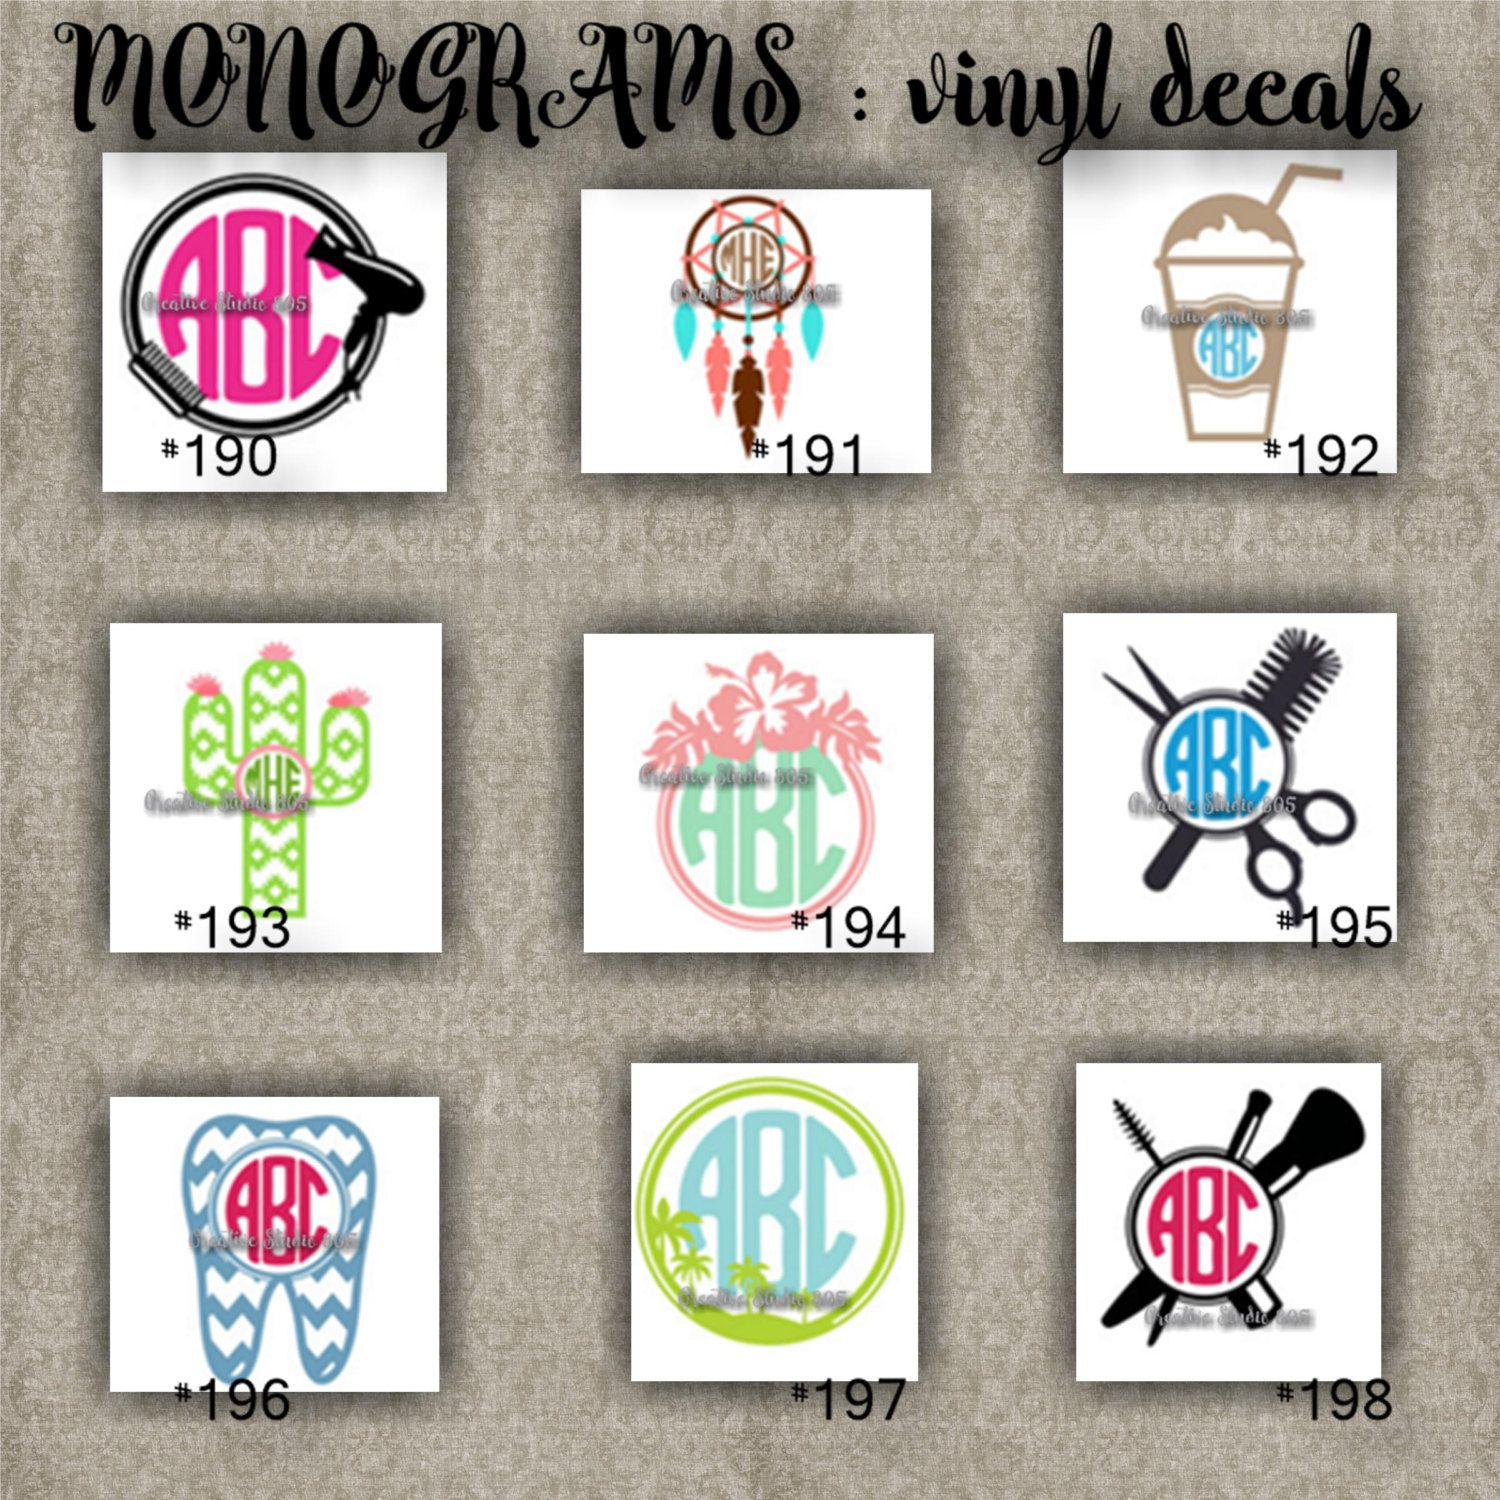 Custom Vinyl Decal Etsy Custom Vinyl Decal Etsy Custom Vinyl - Sticker custom vinyl decals for carcustom vinyl decals and stickers by stickythingz on etsy